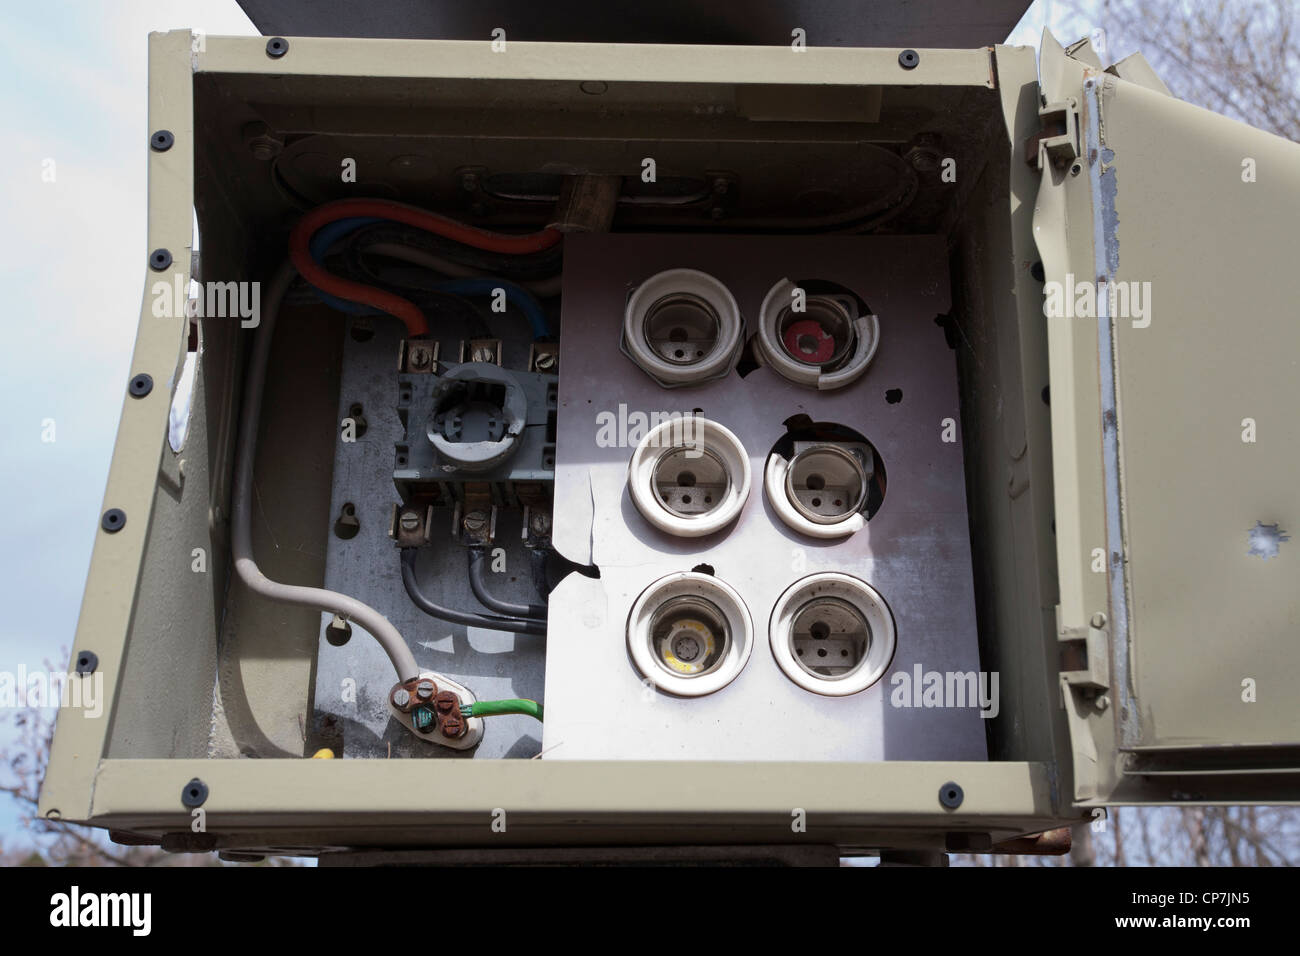 old empty fuse box Stock Photo: 48111537 - Alamy on residential smoke detectors, residential heaters, residential cabling, residential circuit breakers, residential wiring,